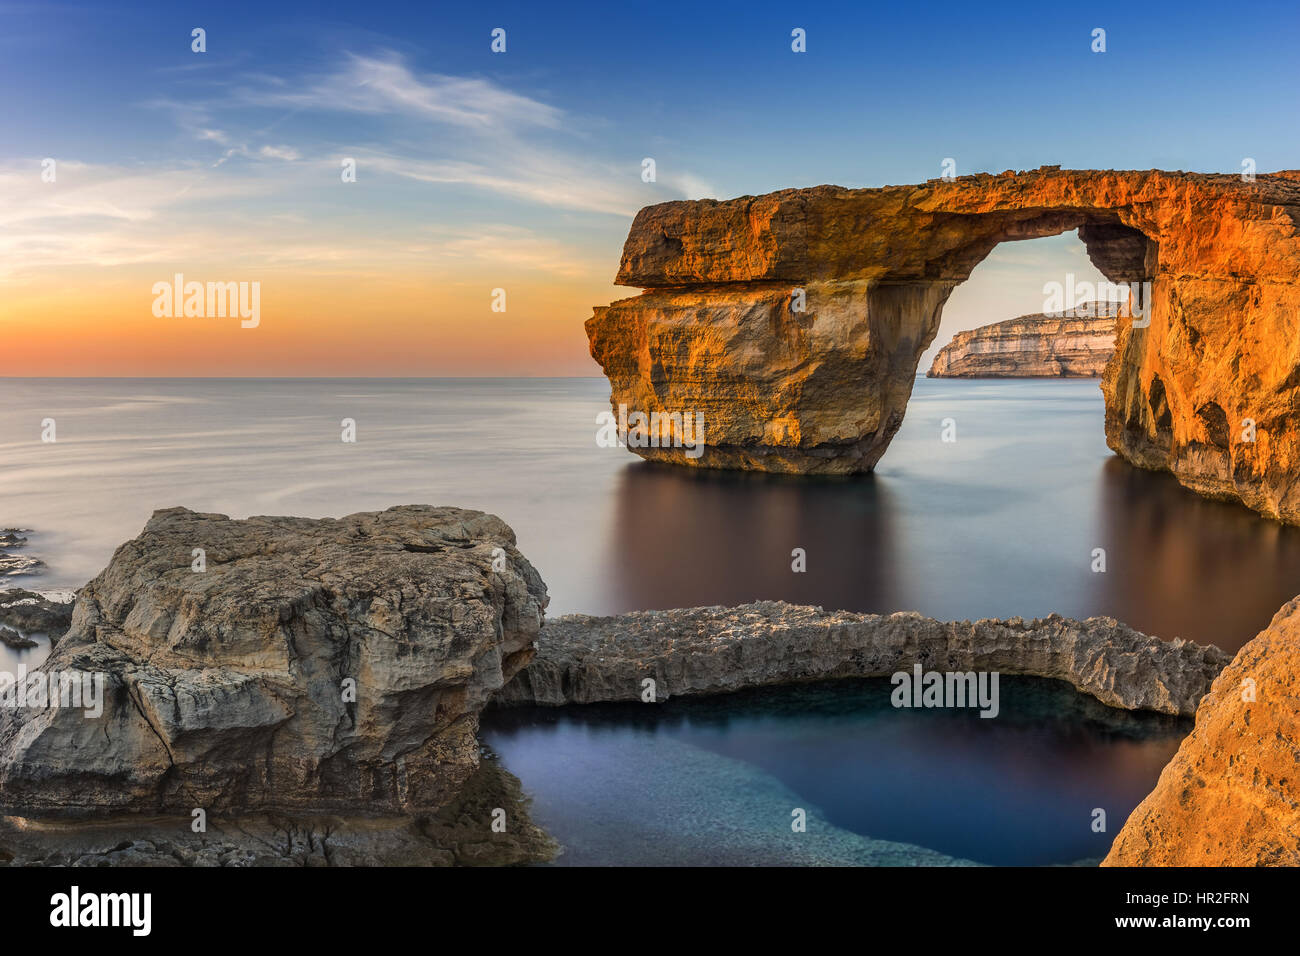 Gozo, Malta - Sunset at the beautiful Azure Window, a natural arch and famous landmark on the island of Gozo - Stock Image